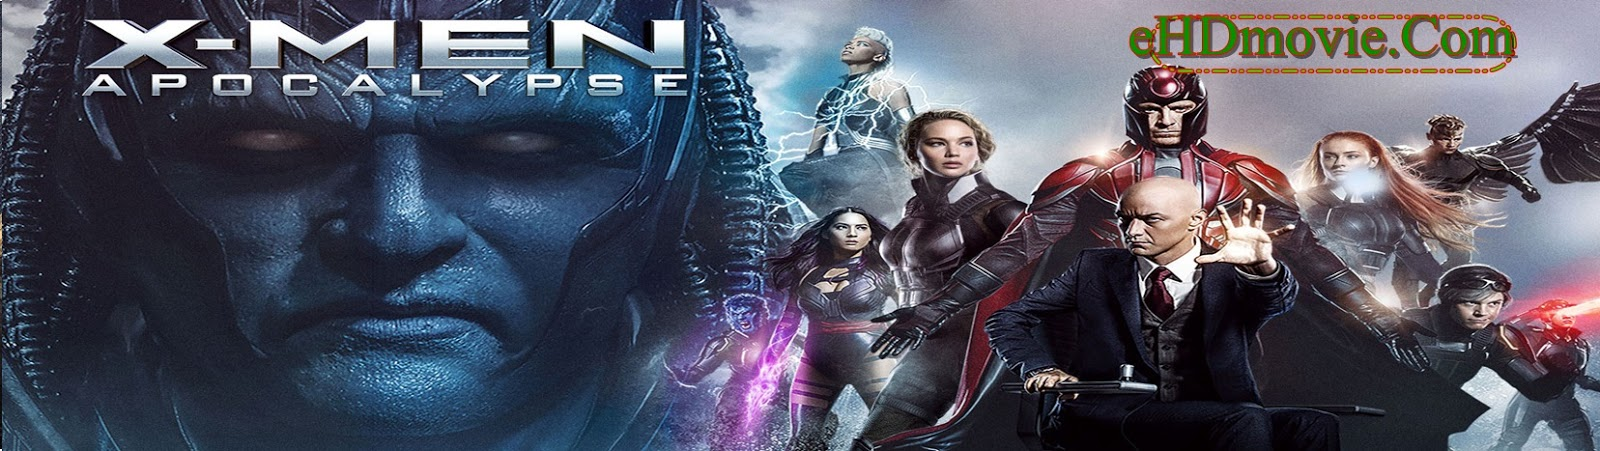 X-Men Apocalypse 2016 Full Movie Dual Audio [Hindi – English] 1080p - 720p - 480p ORG BRRip 450MB - 1.4GB - 3GB ESubs Free Download